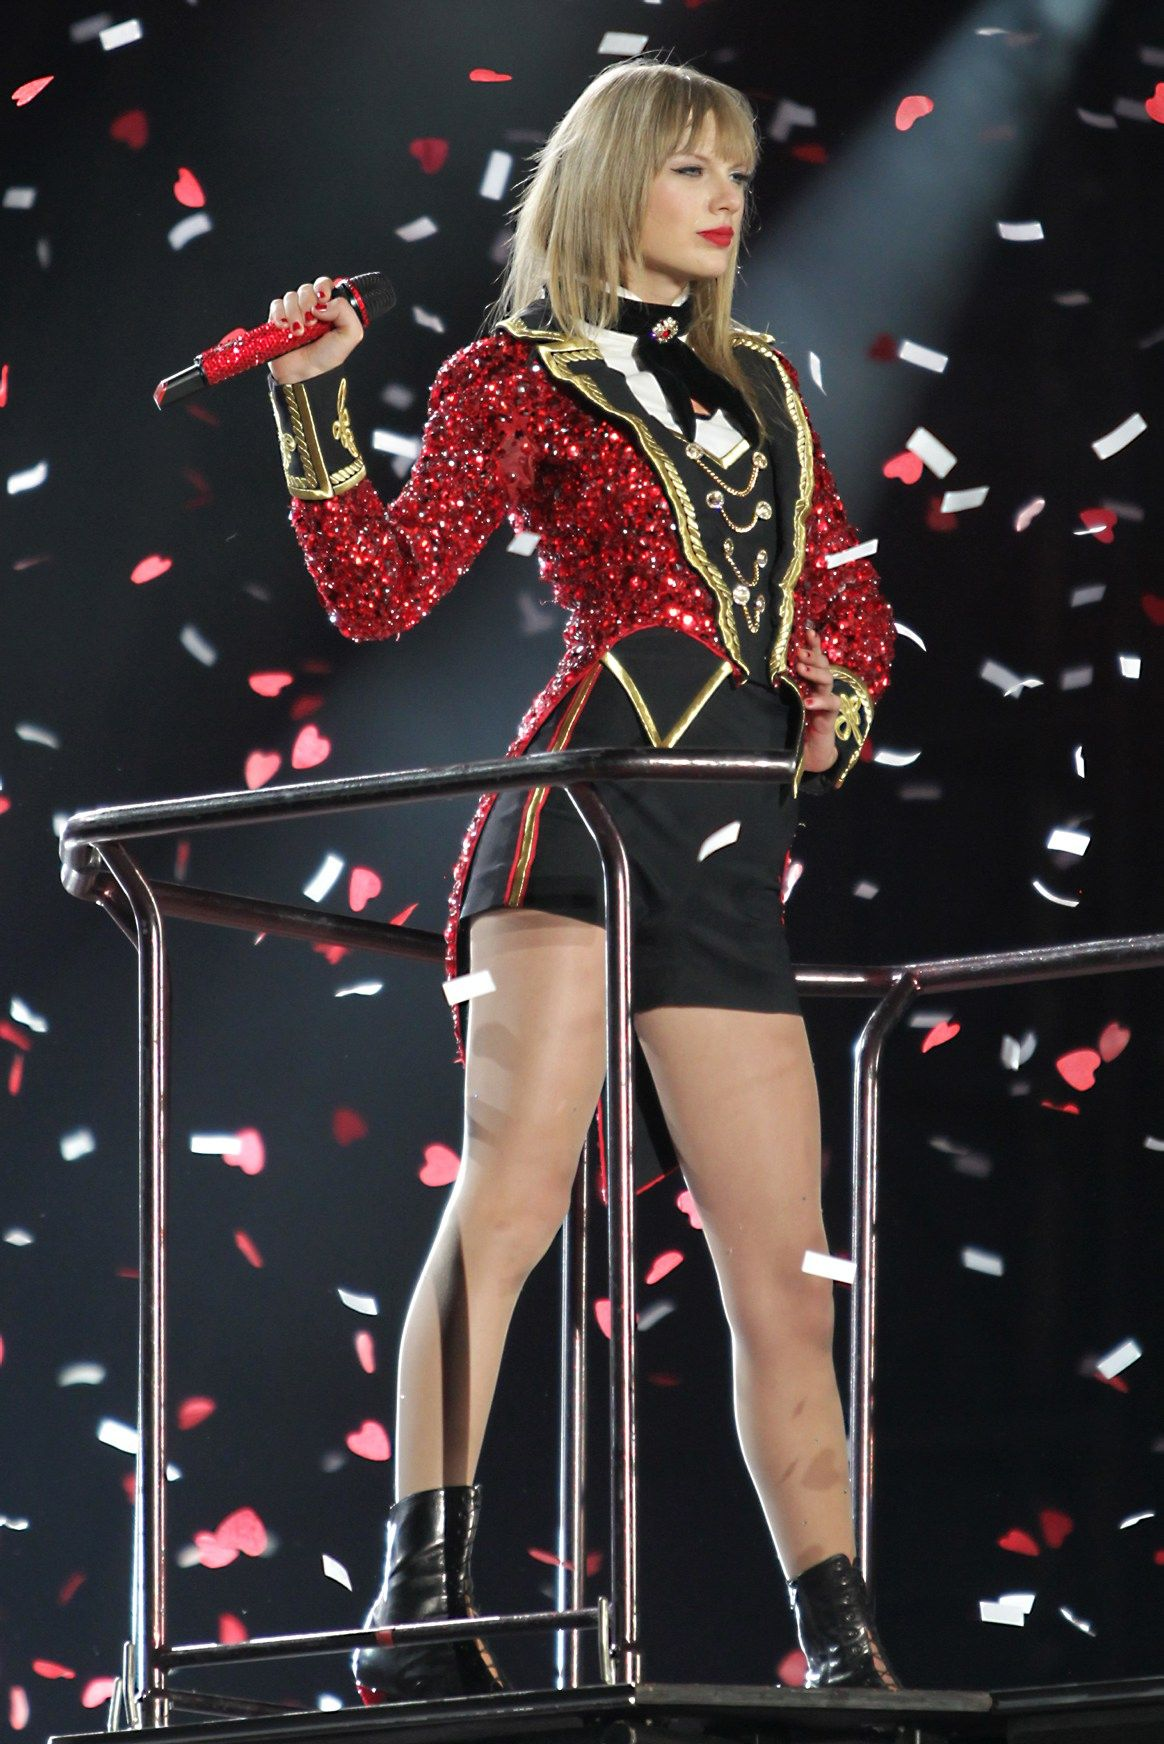 Taylor Swift Red Tour One Of The Most Fun Concerts I Ve Been To